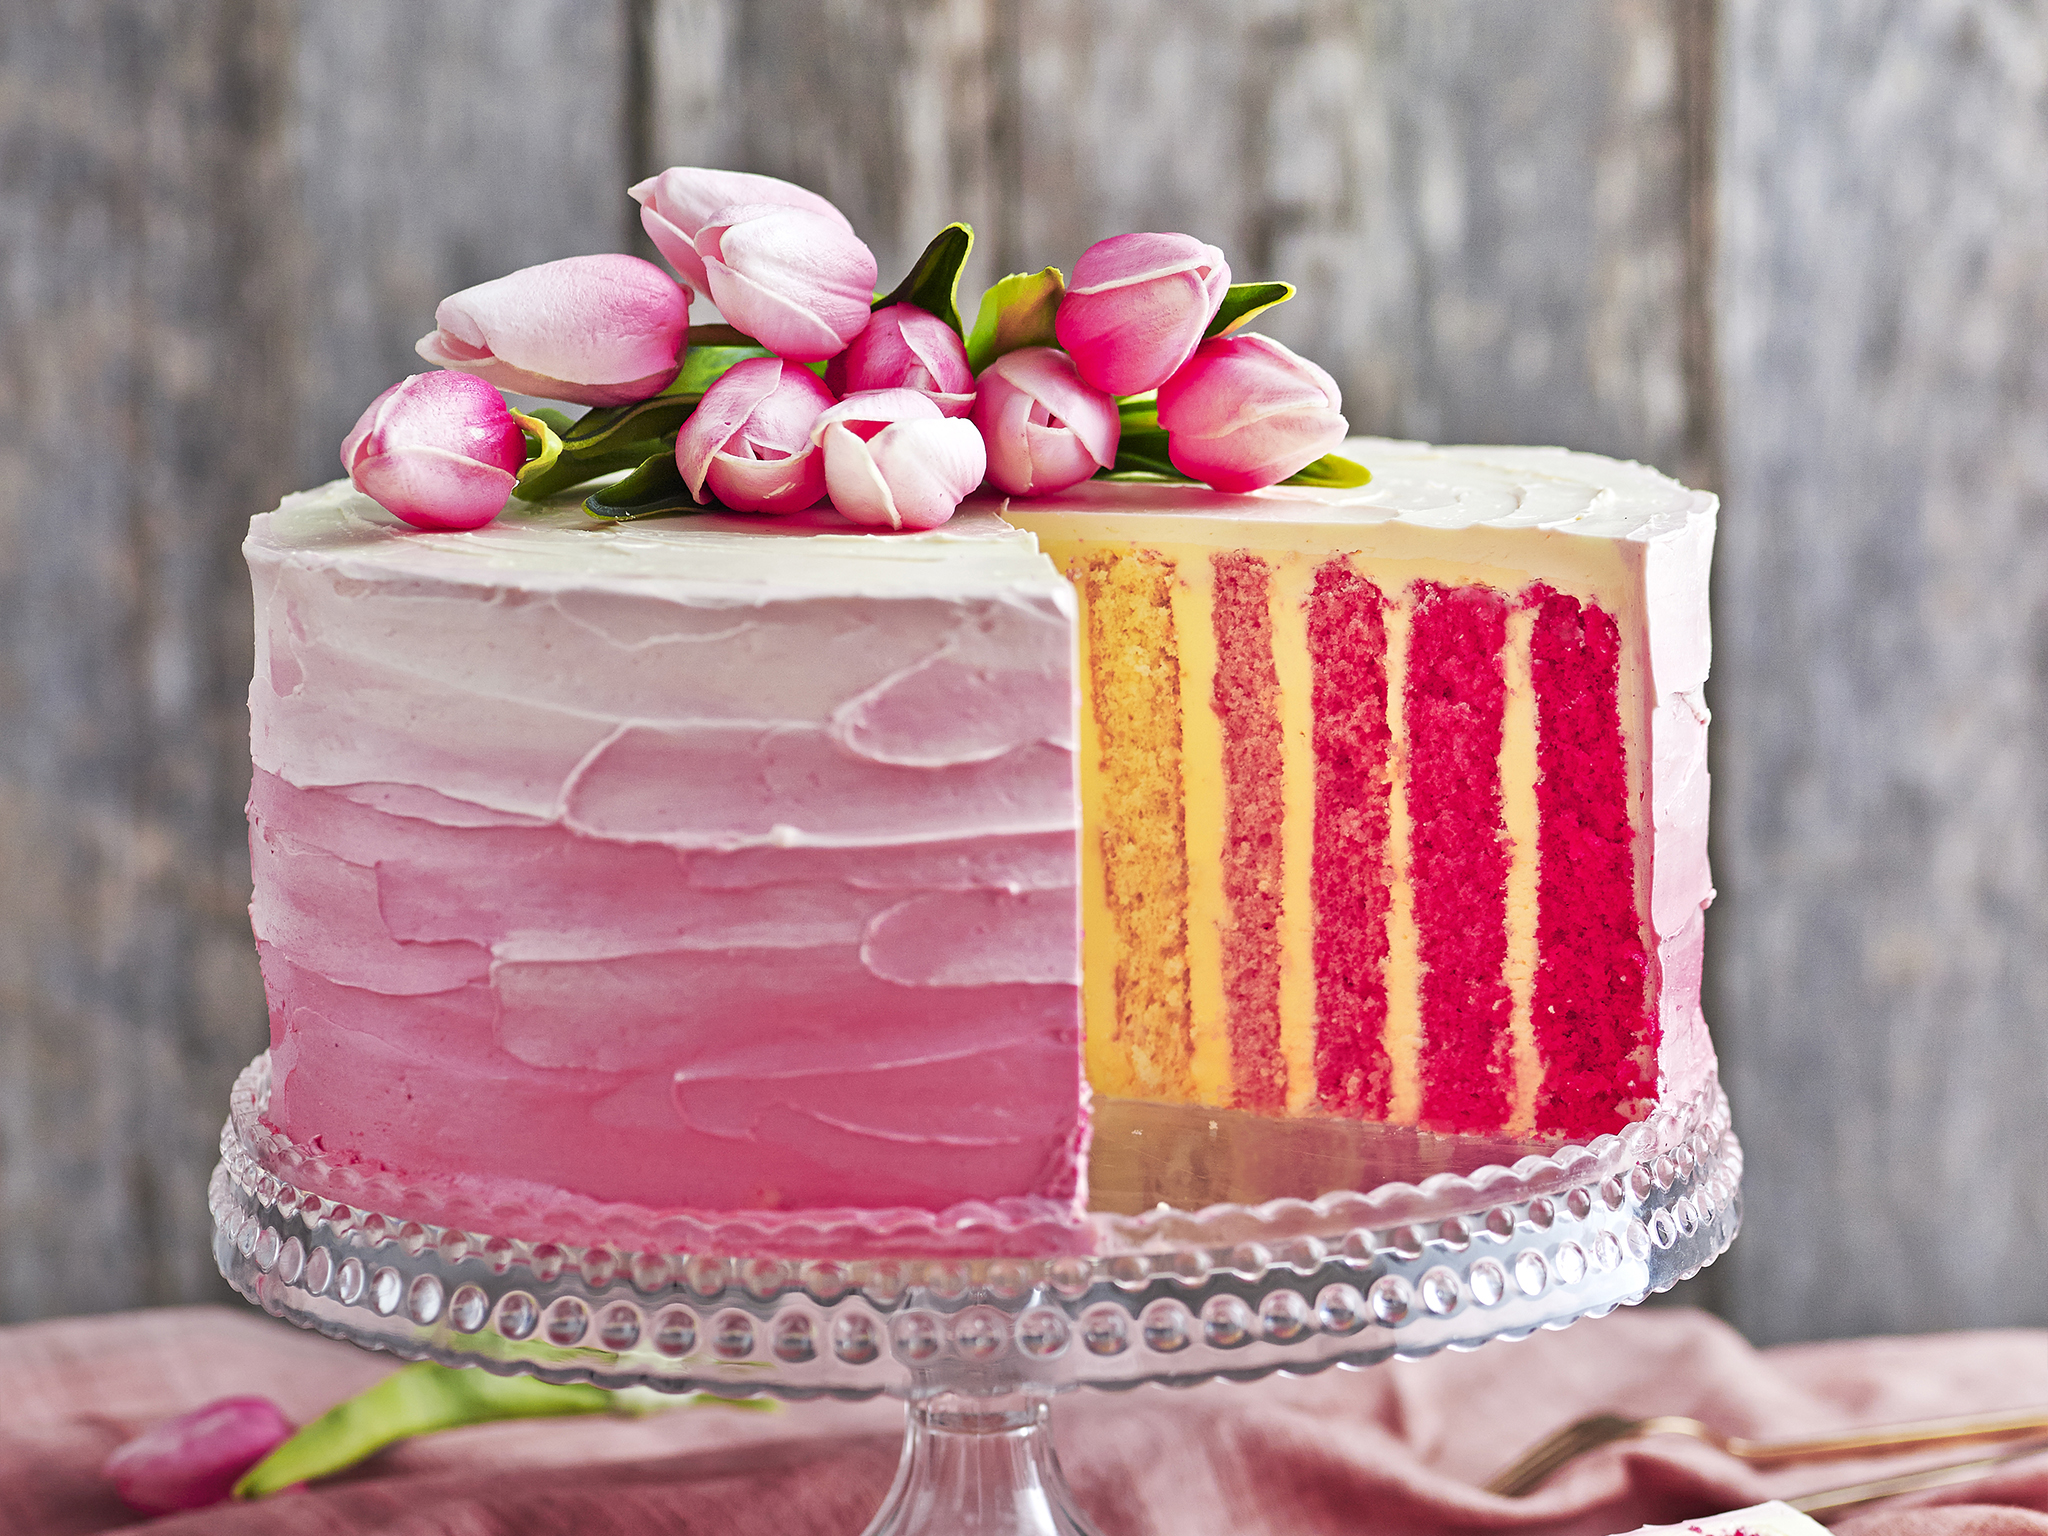 Here Are Some Simple Tips And Tricks To Bake The Perfect Cake